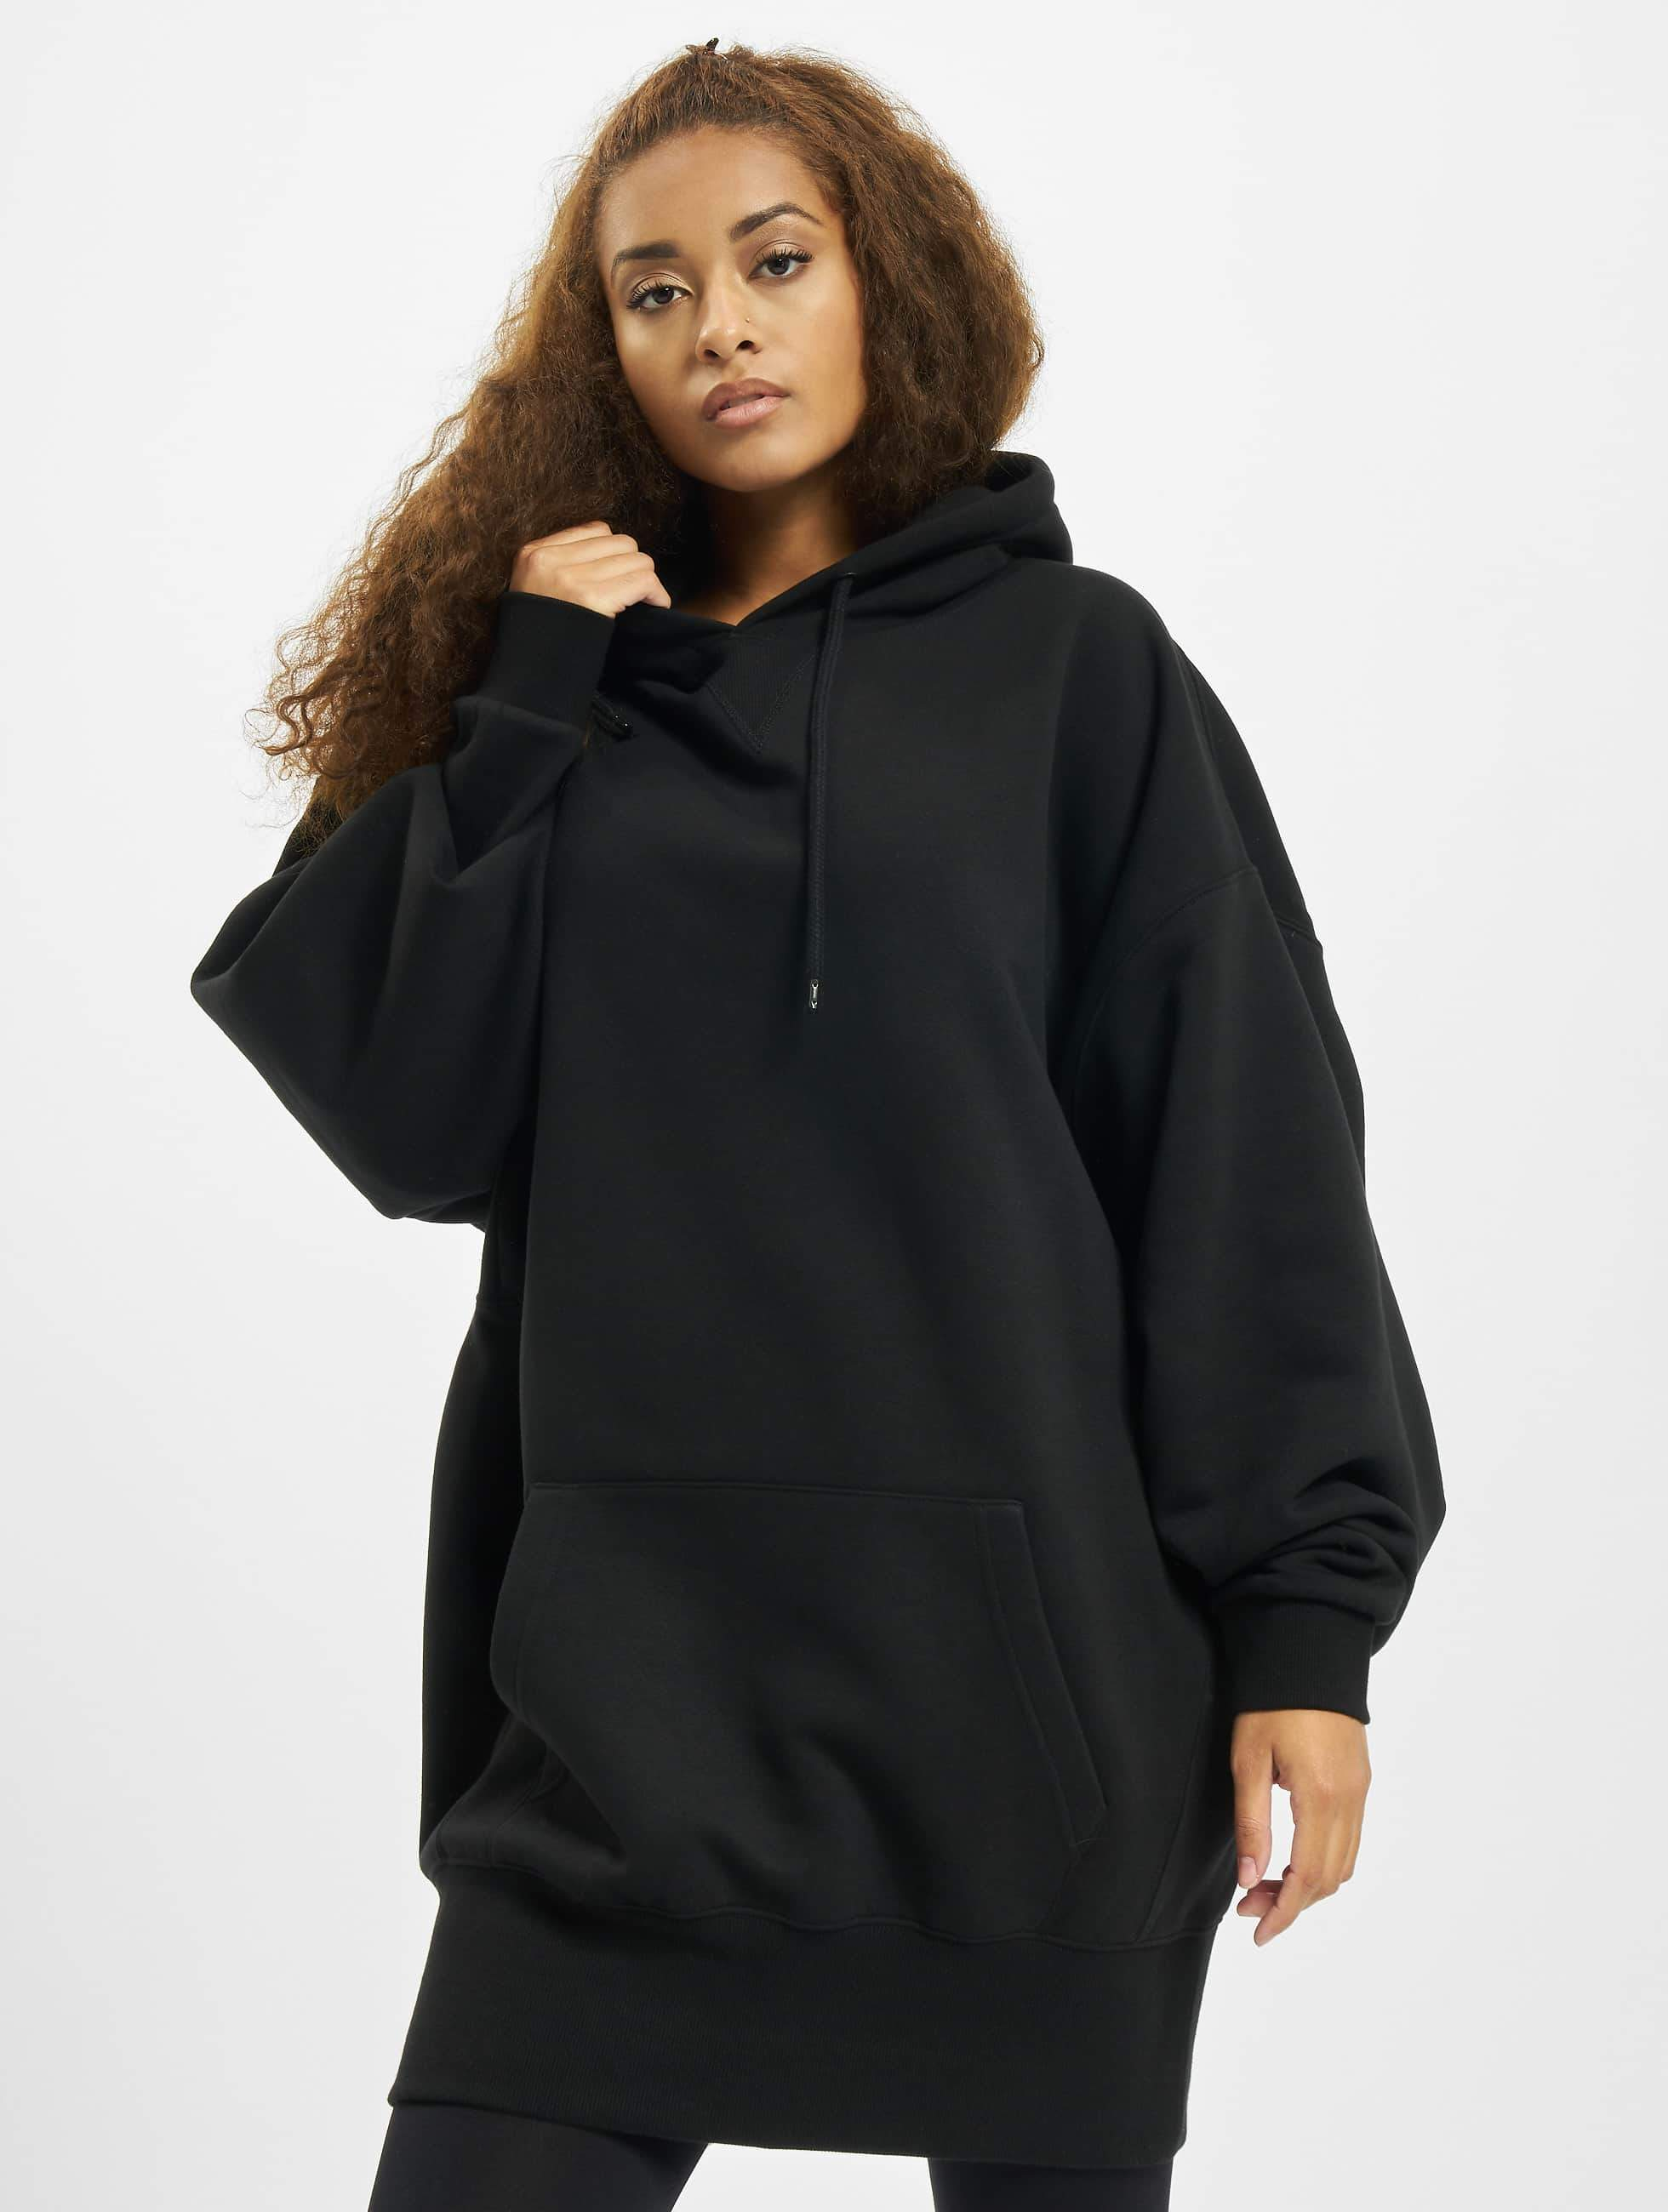 defshop damen hoodies